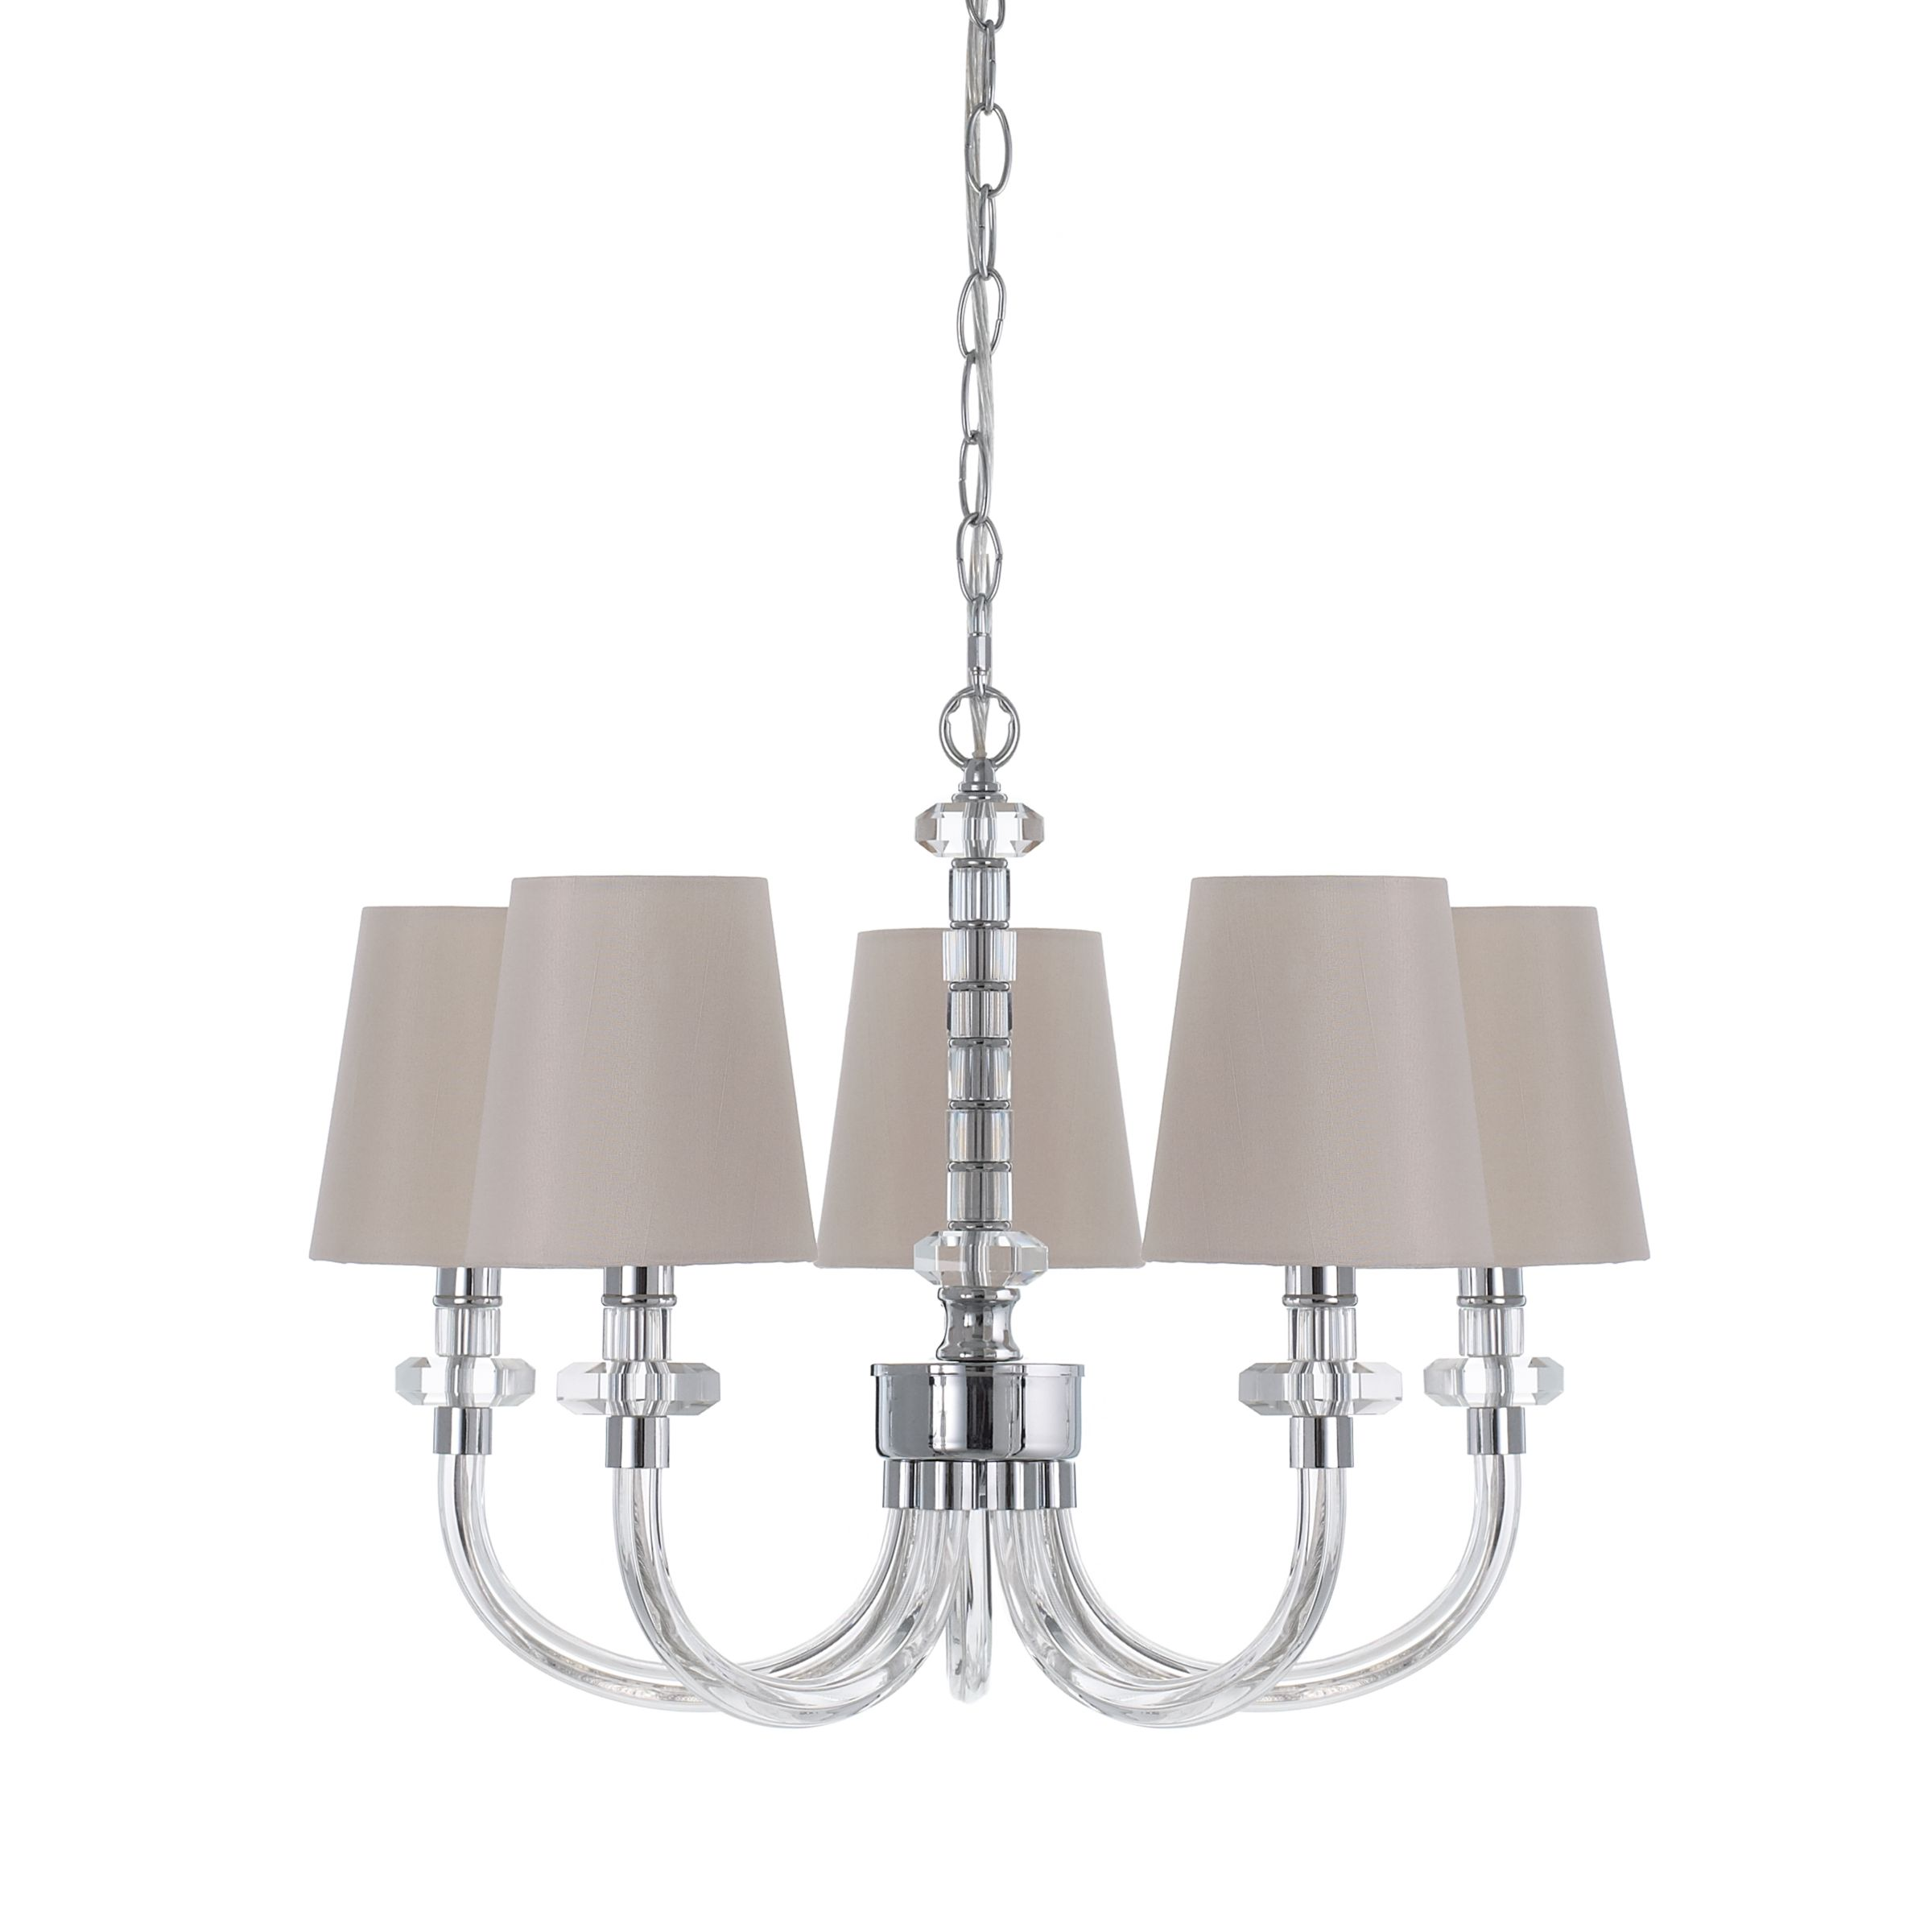 Ceiling Light 5 Arm Chrome : John lewis darcey ceiling light arm review compare